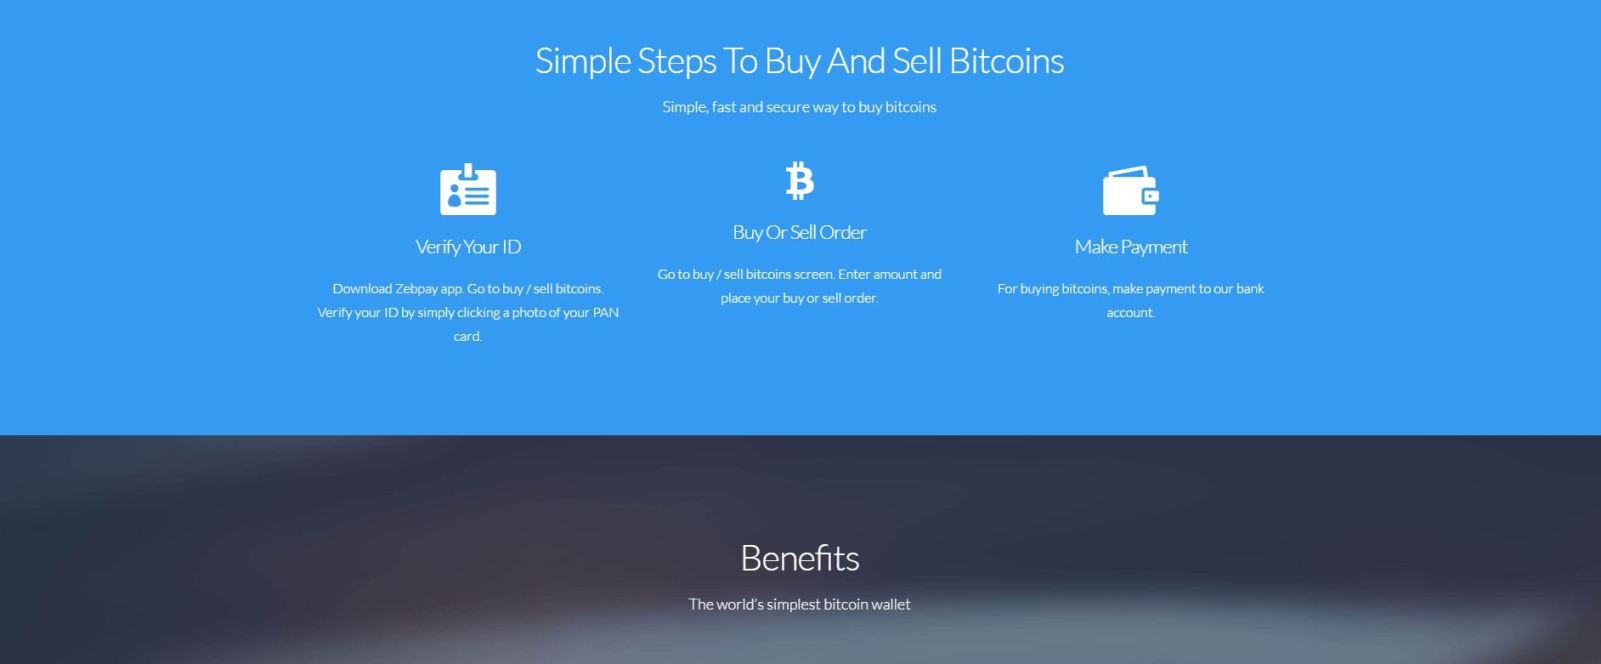 Bitcoin zebpay promo code forex trading ref71112455 how to get free bitcoins using zebpay promo code here iam going to tell you the steps to claim this promo codet verified zebpay referral code ccuart Choice Image